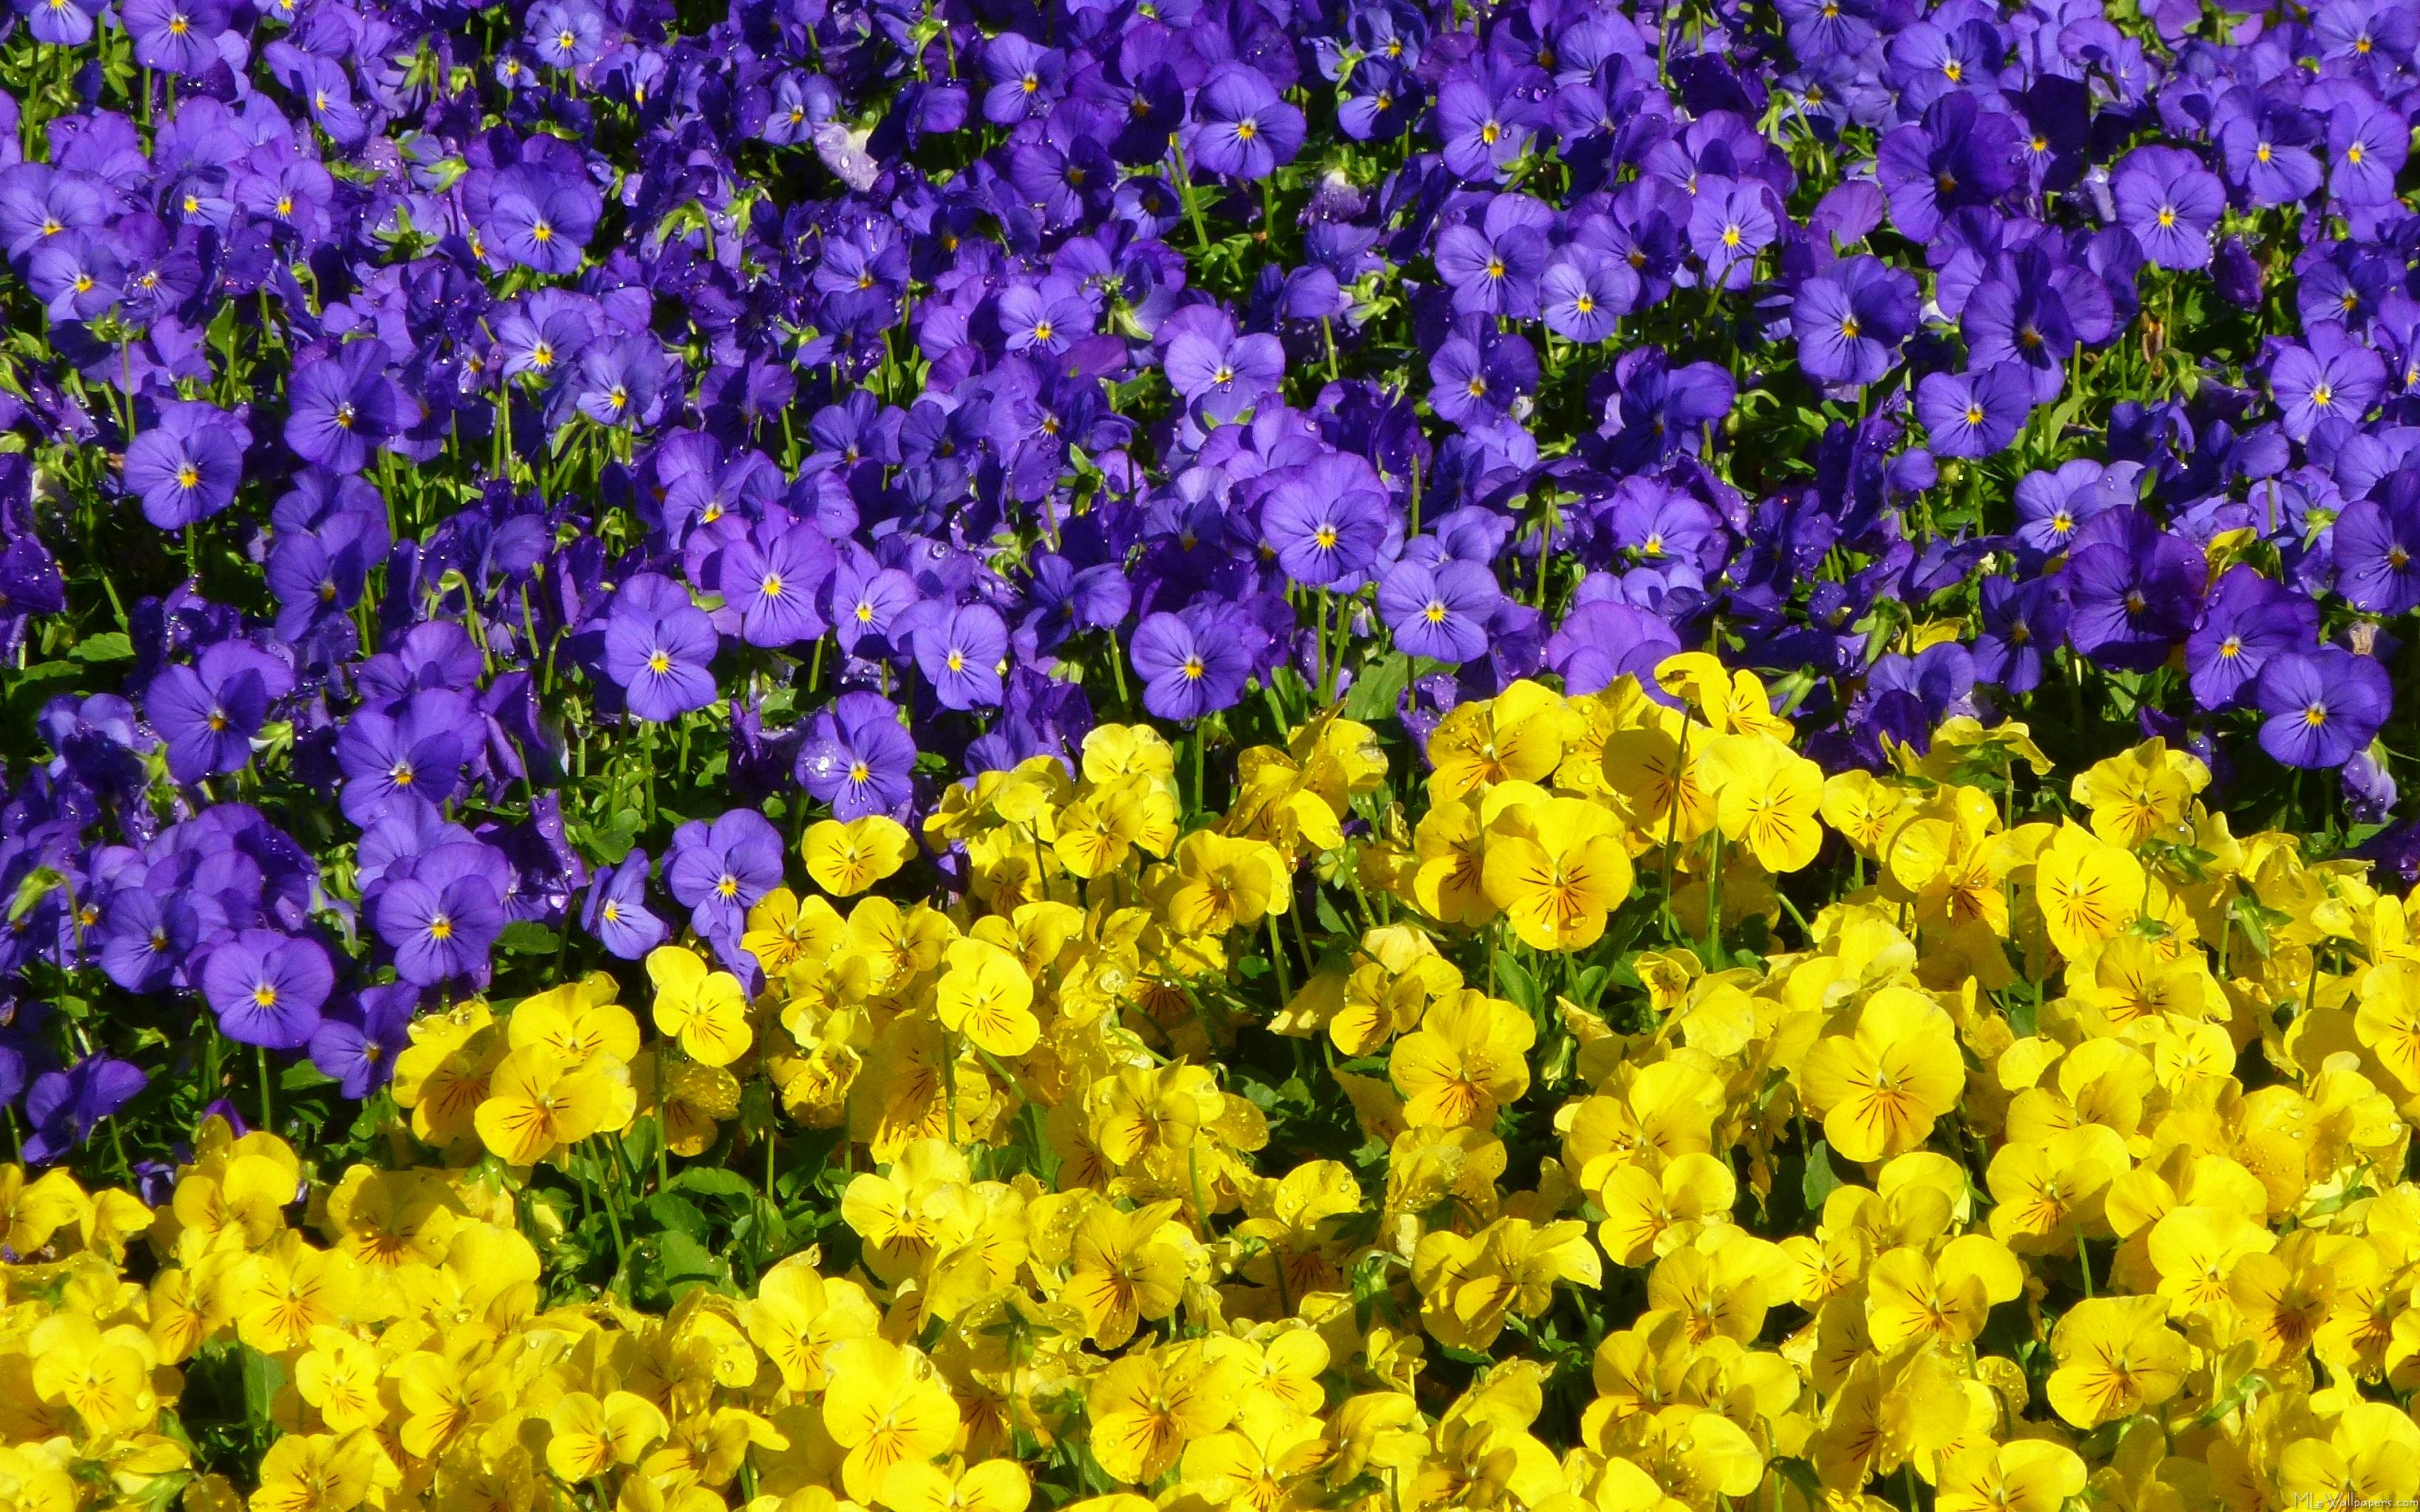 MLeWallpapers.com - Purple and Yellow Violas